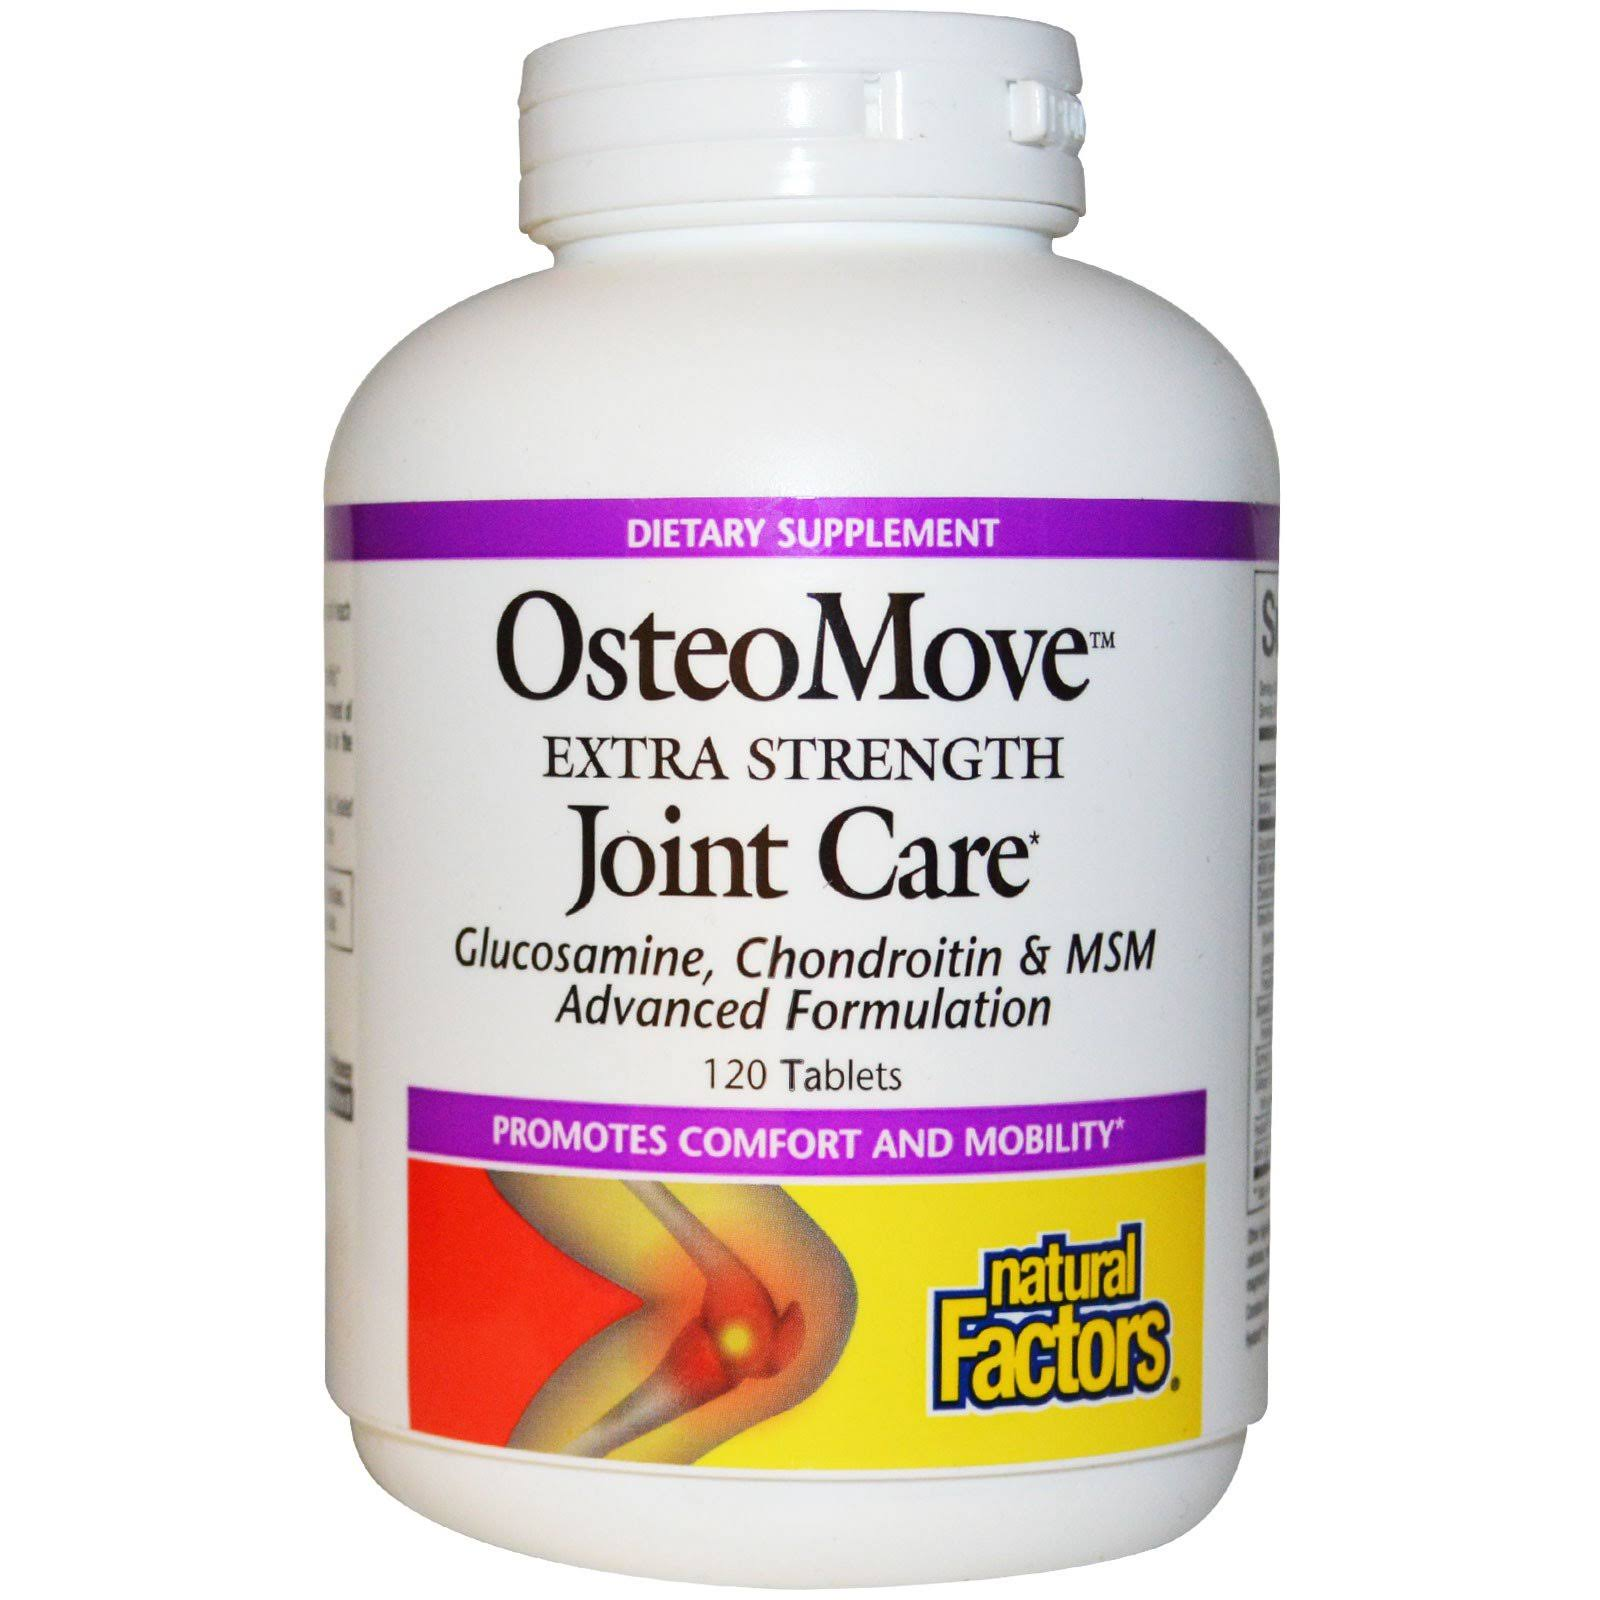 OsteoMove Extra Strength Joint Care - 120 Tablets